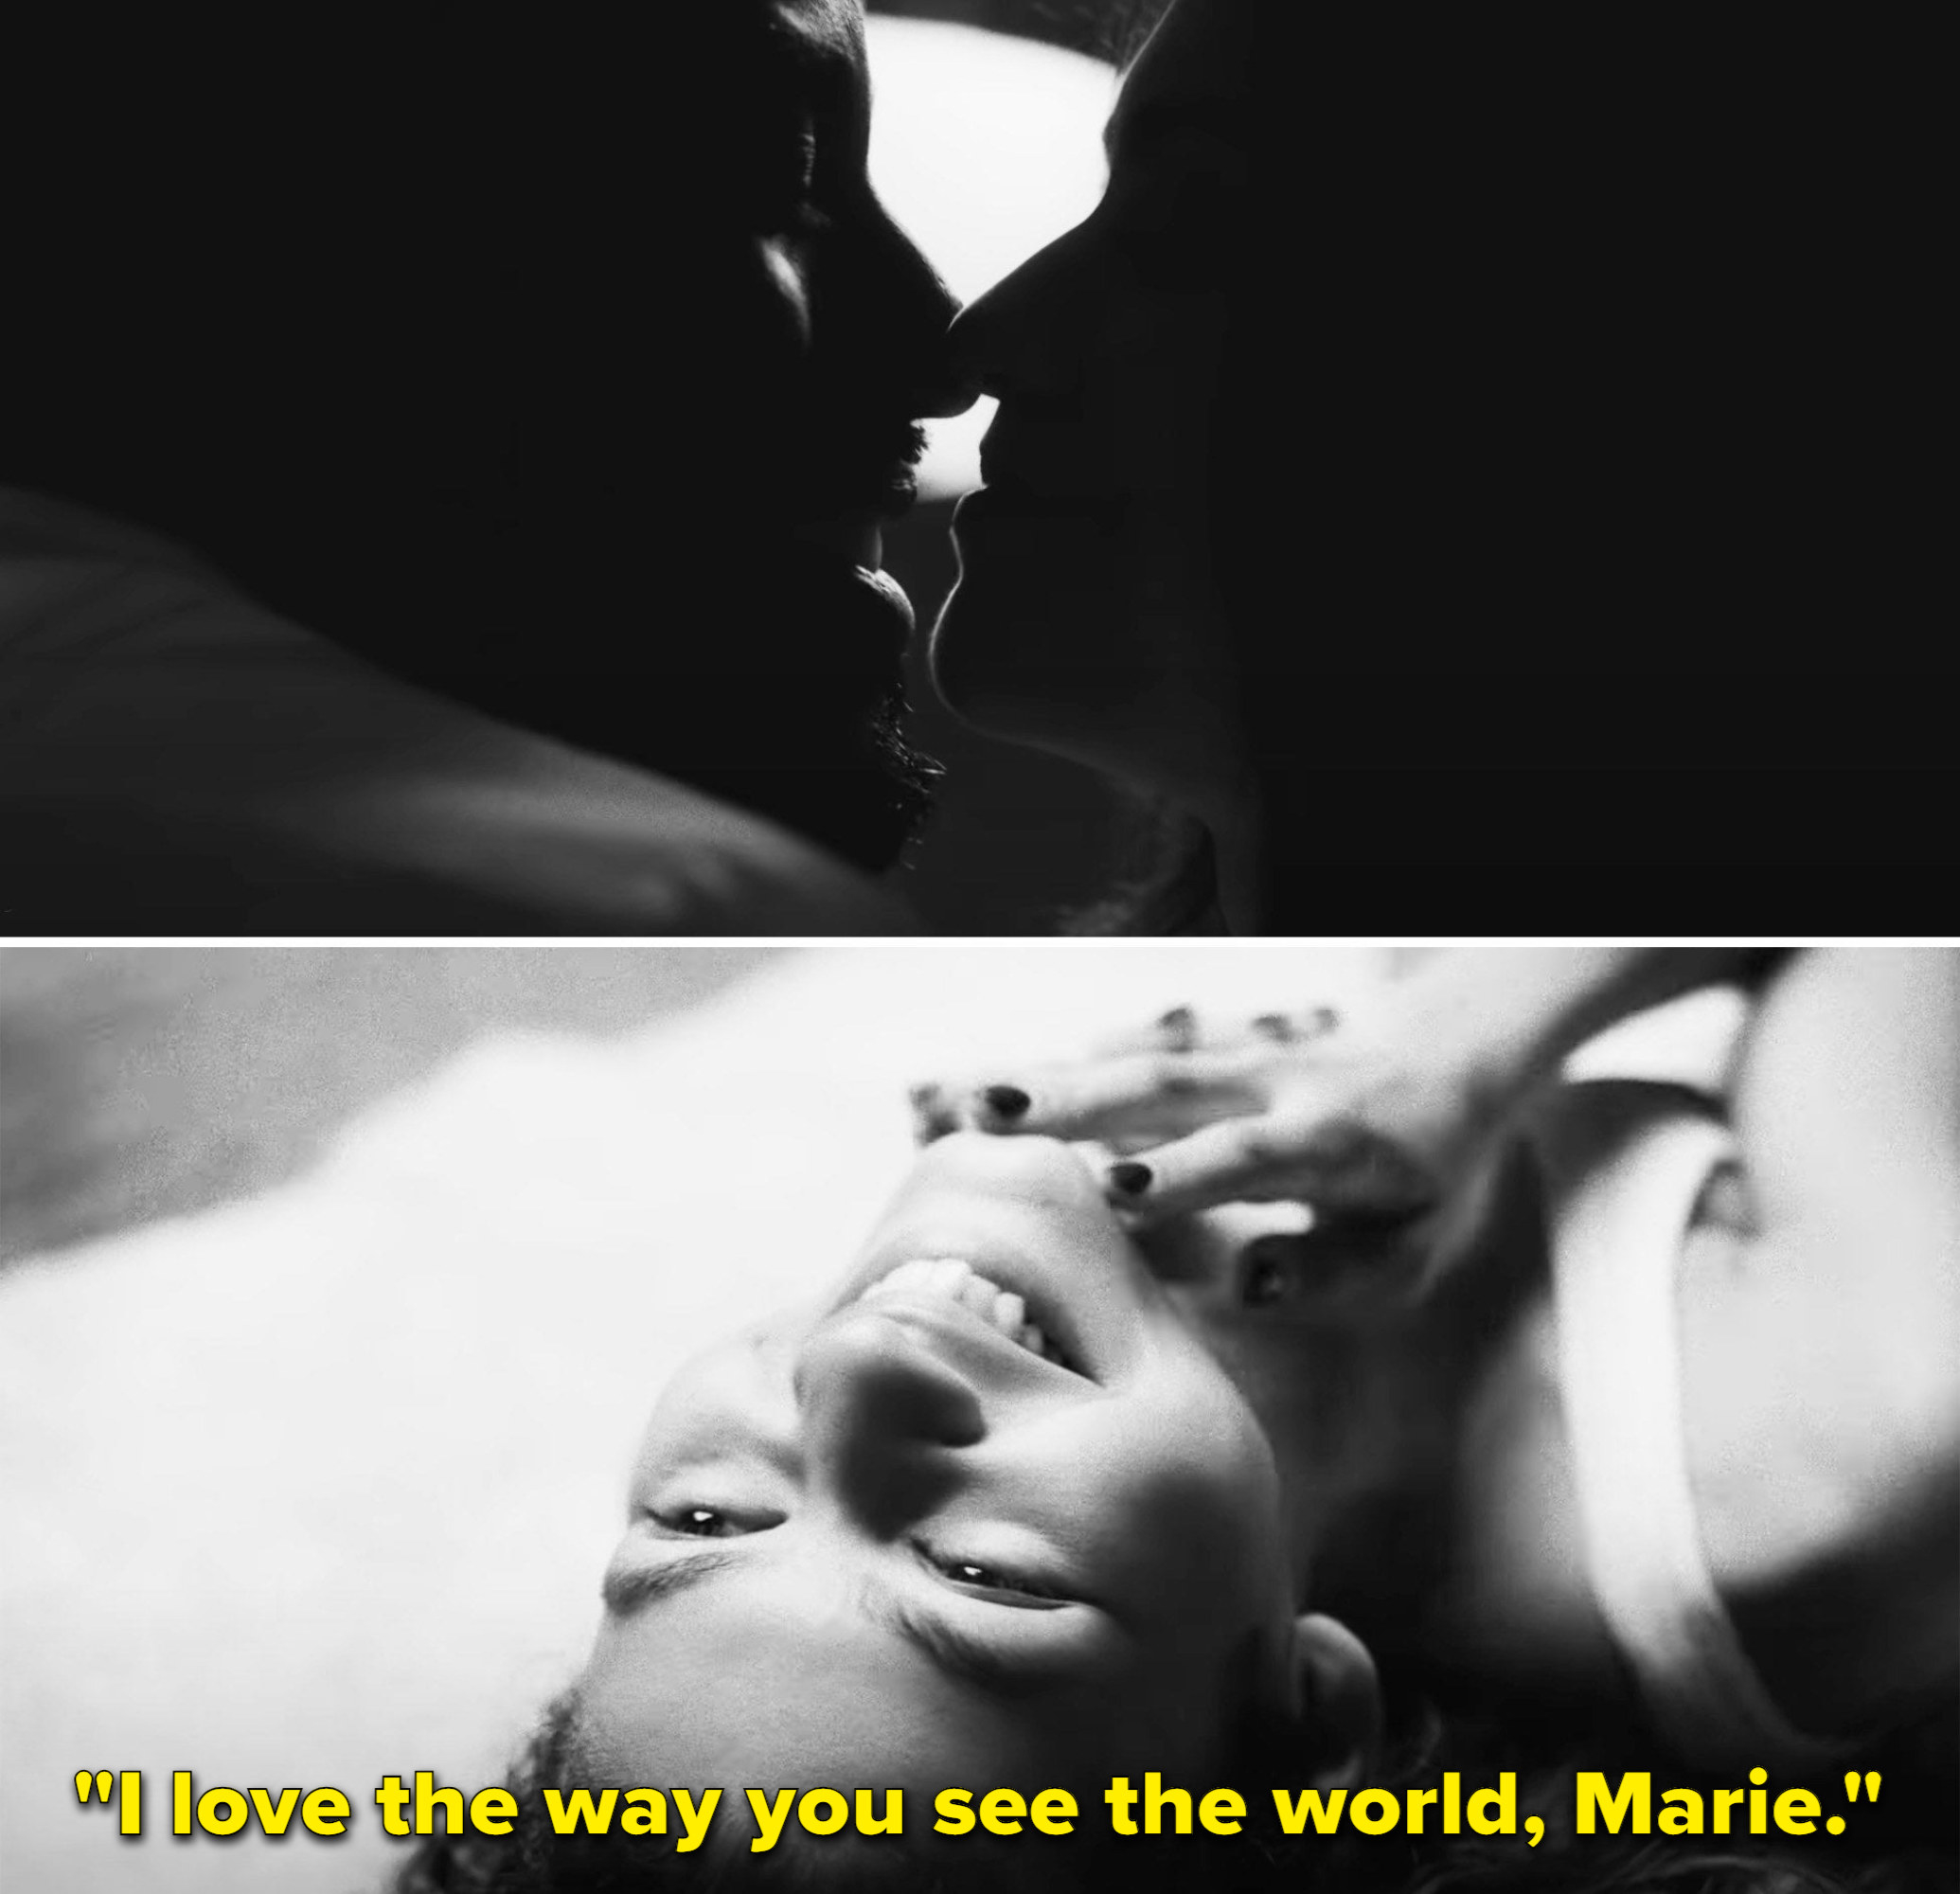 Malcom saying 'I love the way you see the world, Marie'